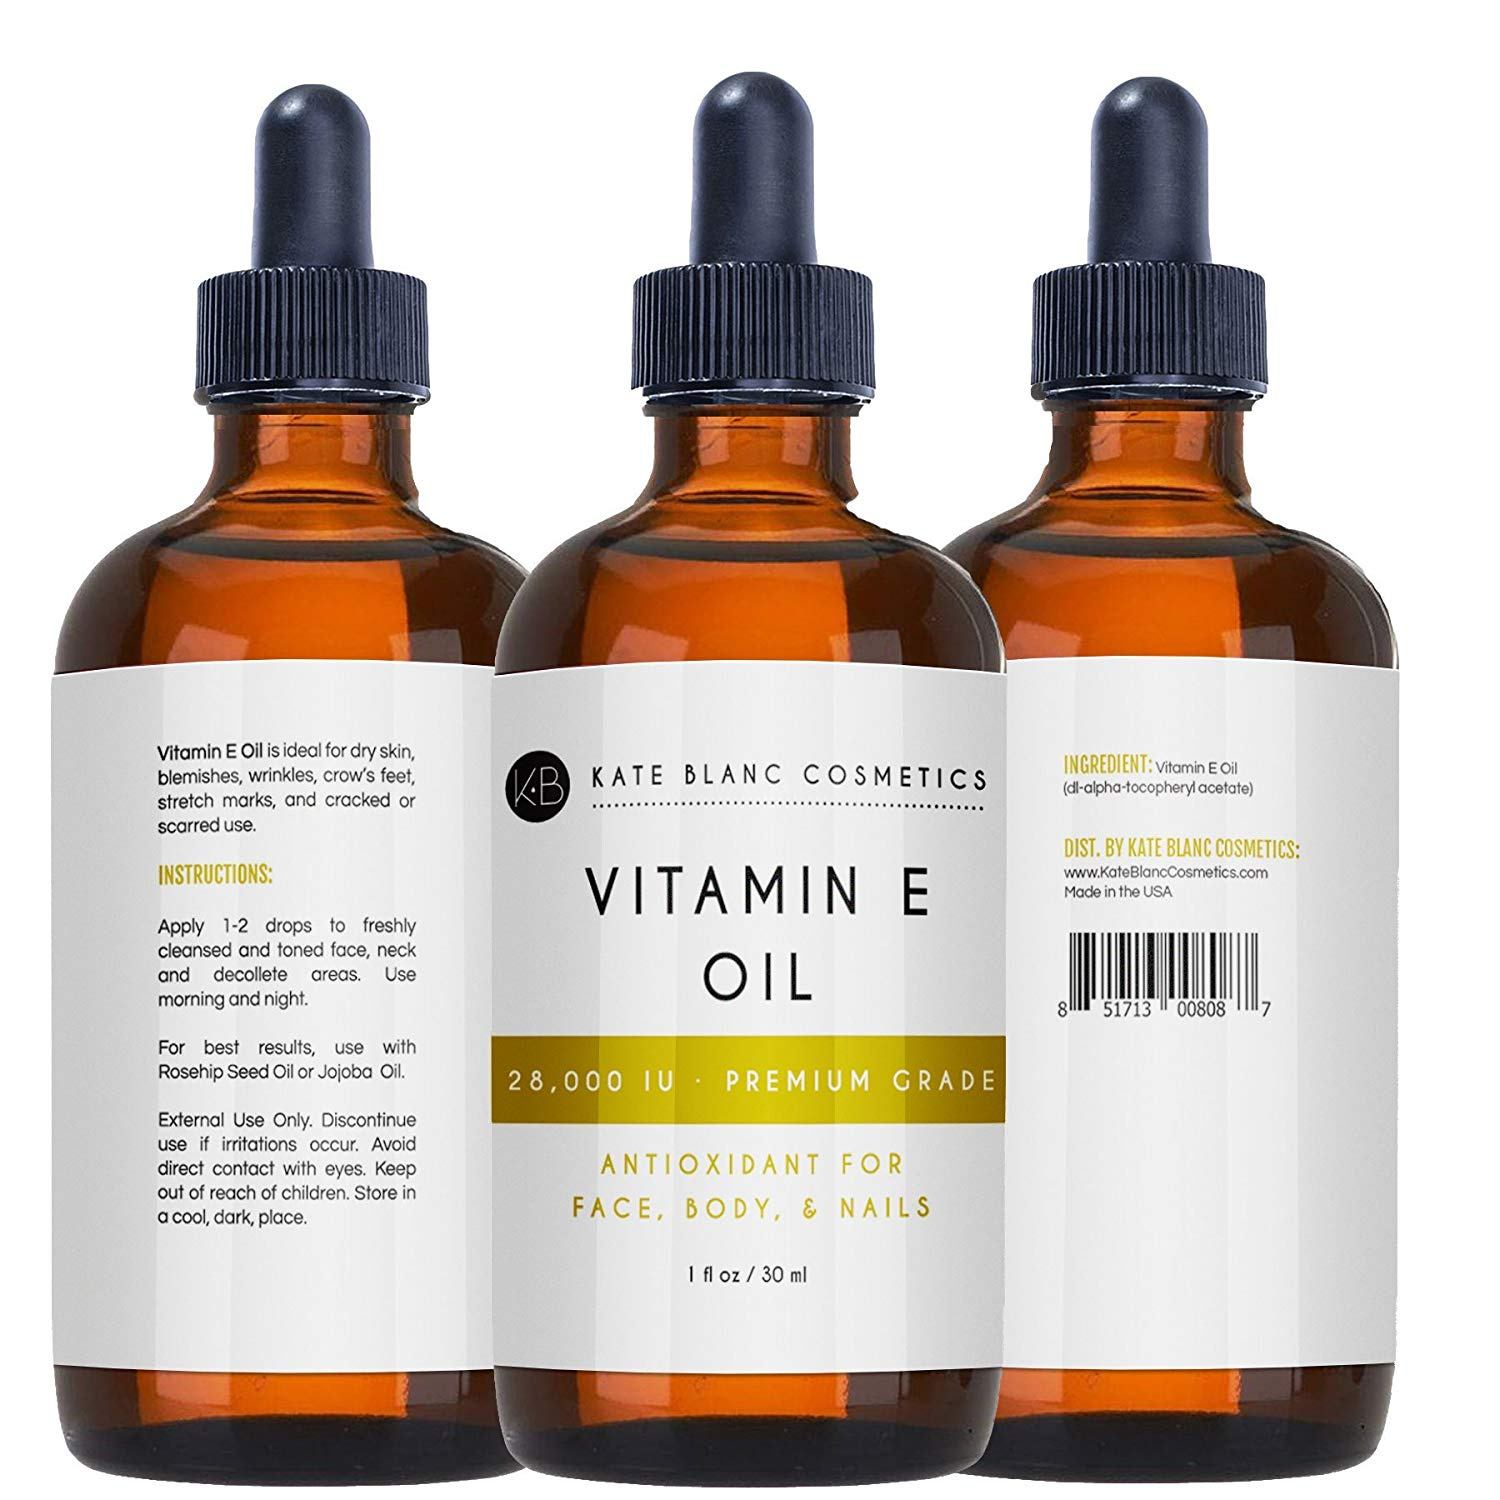 Vitamin E Oil By Kate Blanc Moisturises Face And Skin 100 Pure Extra Strength 28 000 Iu Premium Grade Antioxidants Reduce Appearance Of Scars Wrinkles Dark Spots W Recipes 30ml By Kate